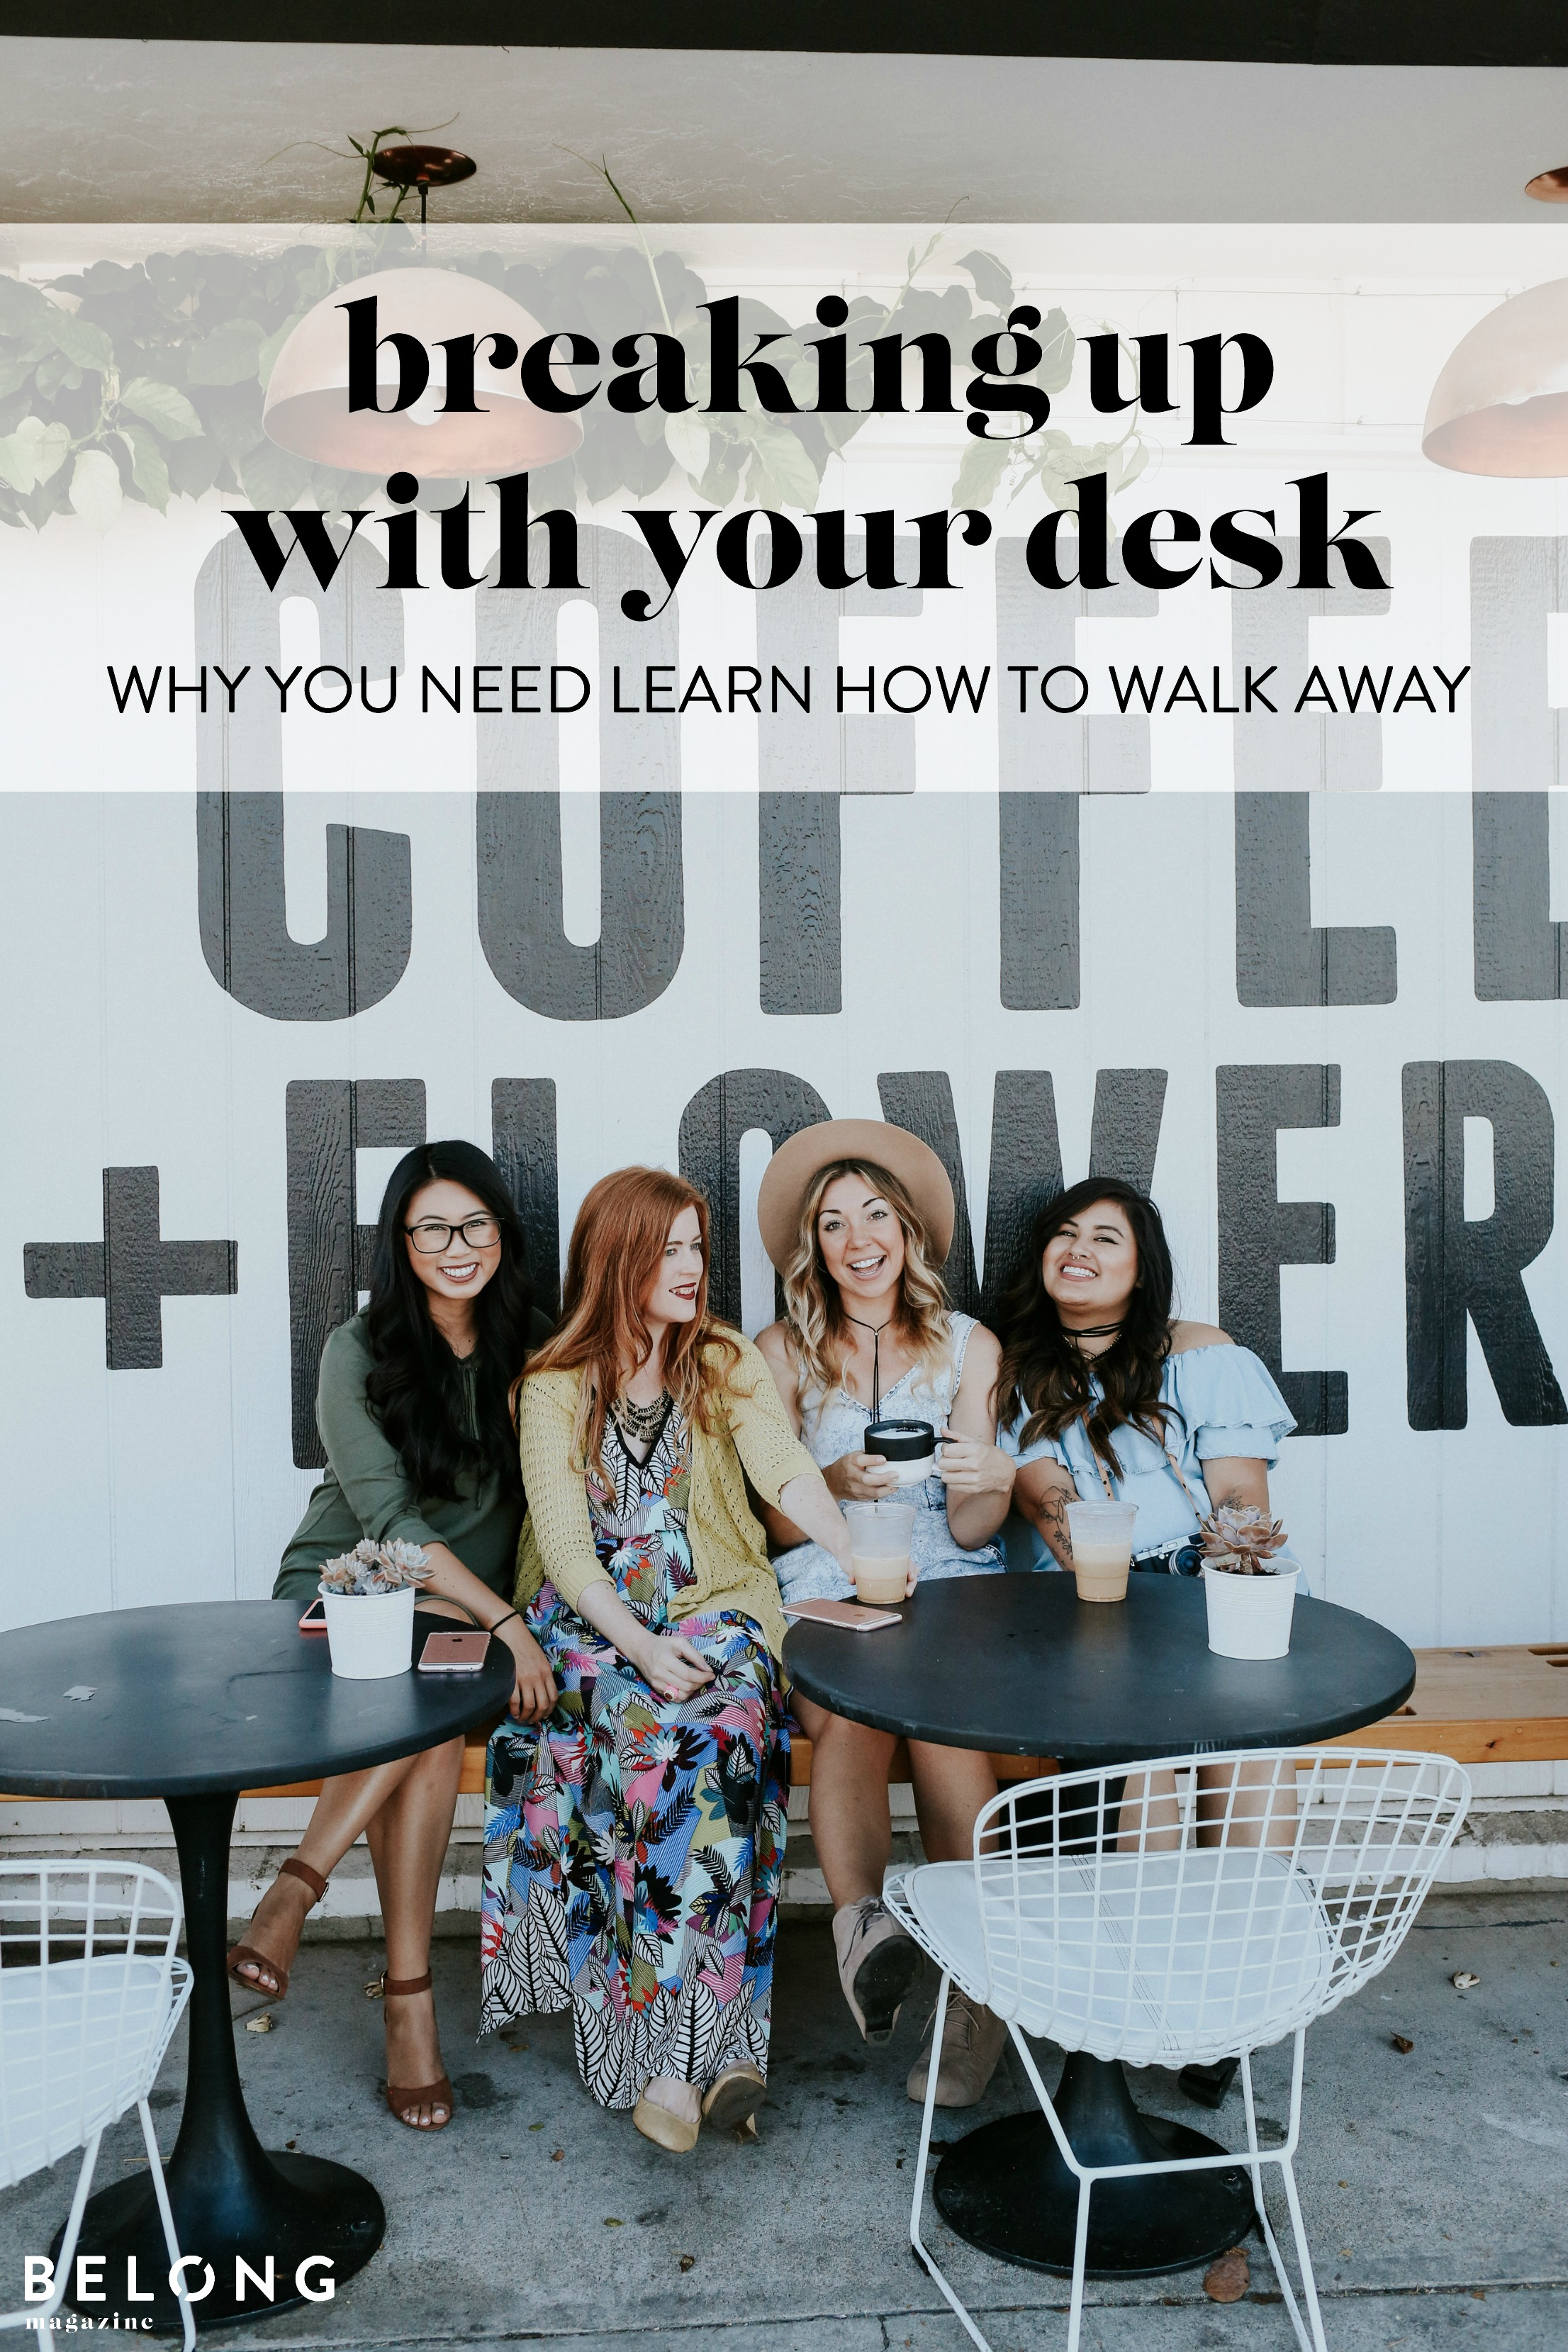 breaking up with your desk--why you need to learn how to walk away with Taylor Griggs of Sand and Sequins as featured in Belong Magazine ISSUE 06